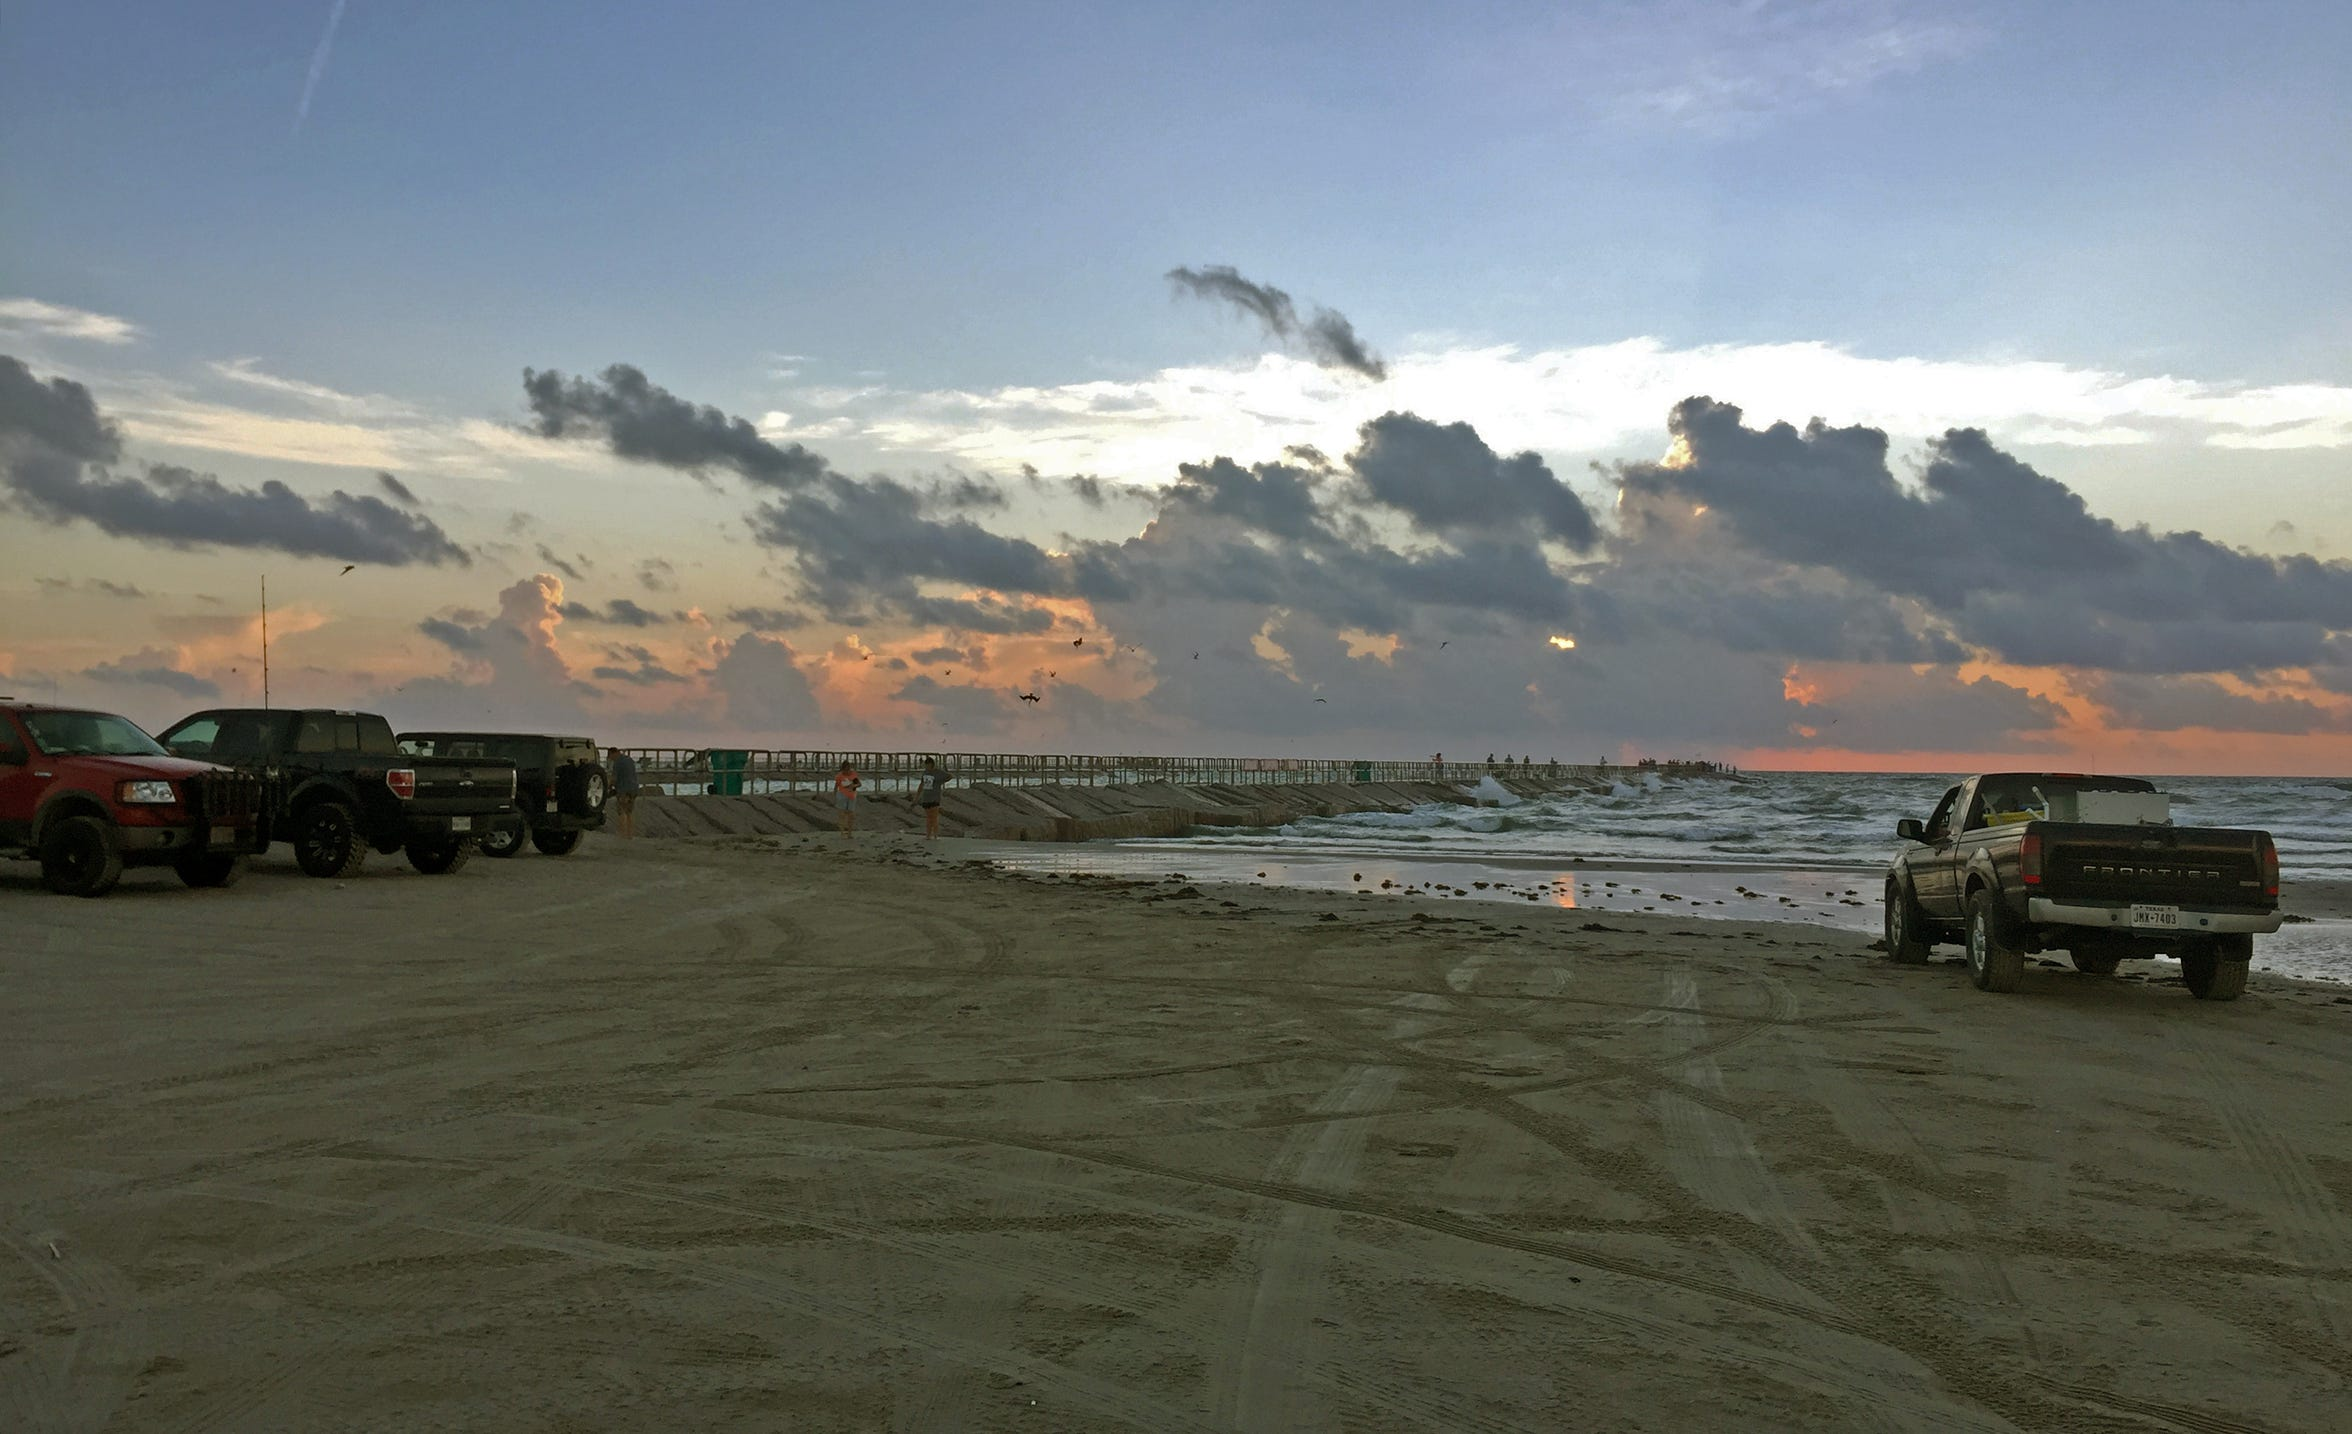 Parking at the base of the jetties requires an annual beach parking permit, which are available at most convenience stores for $12.